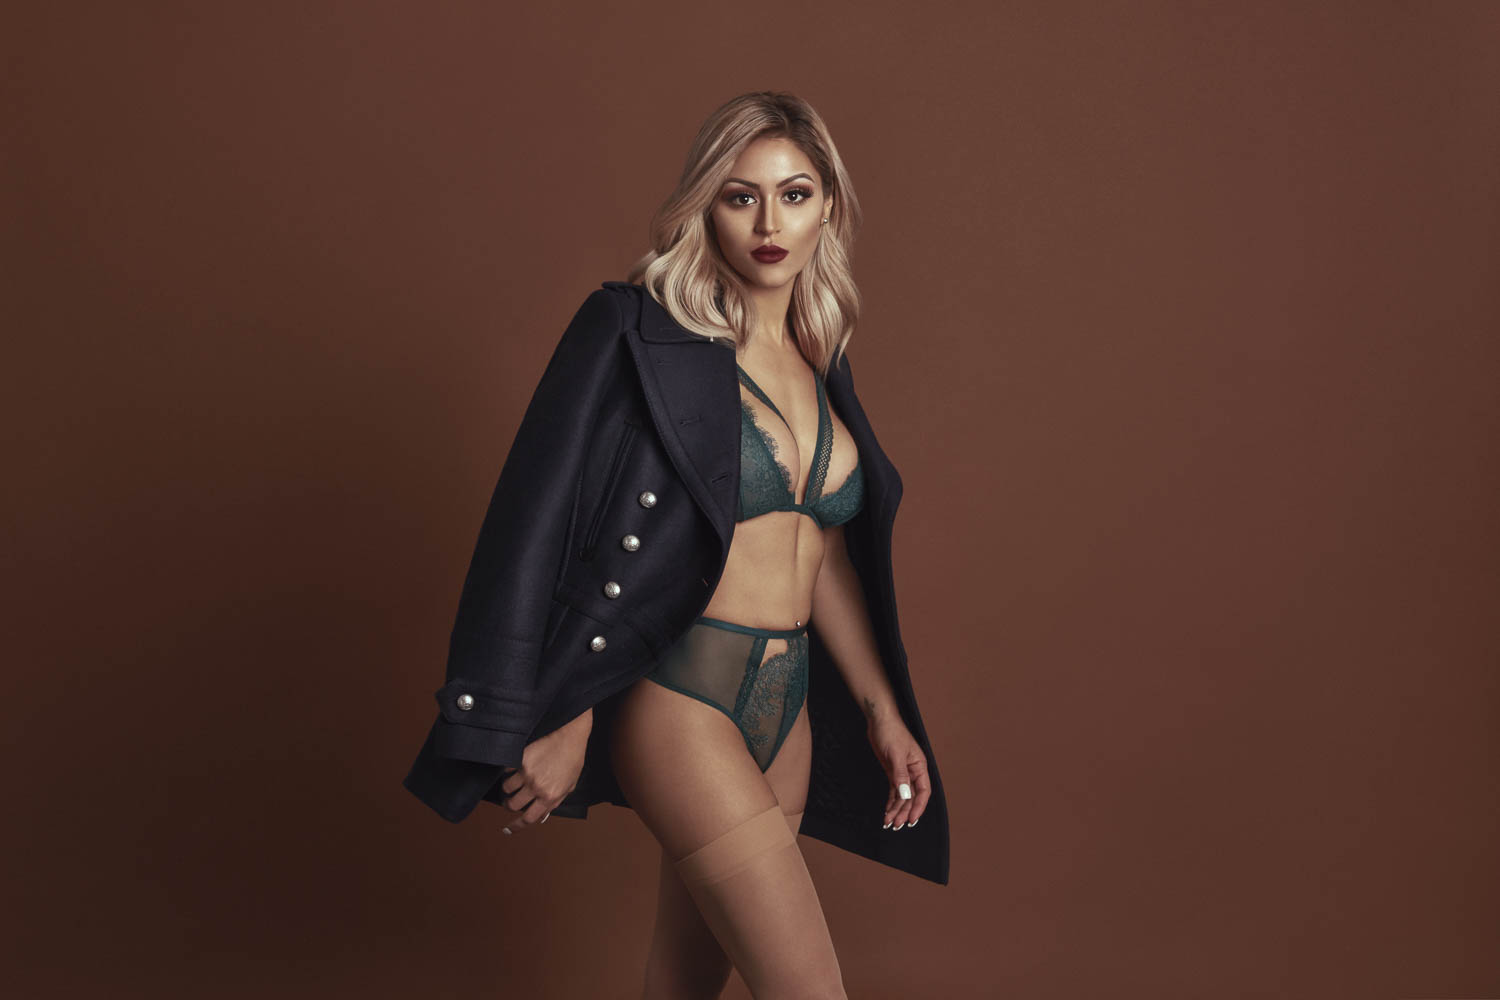 Blonde woman in blue coat and green bra and panty set